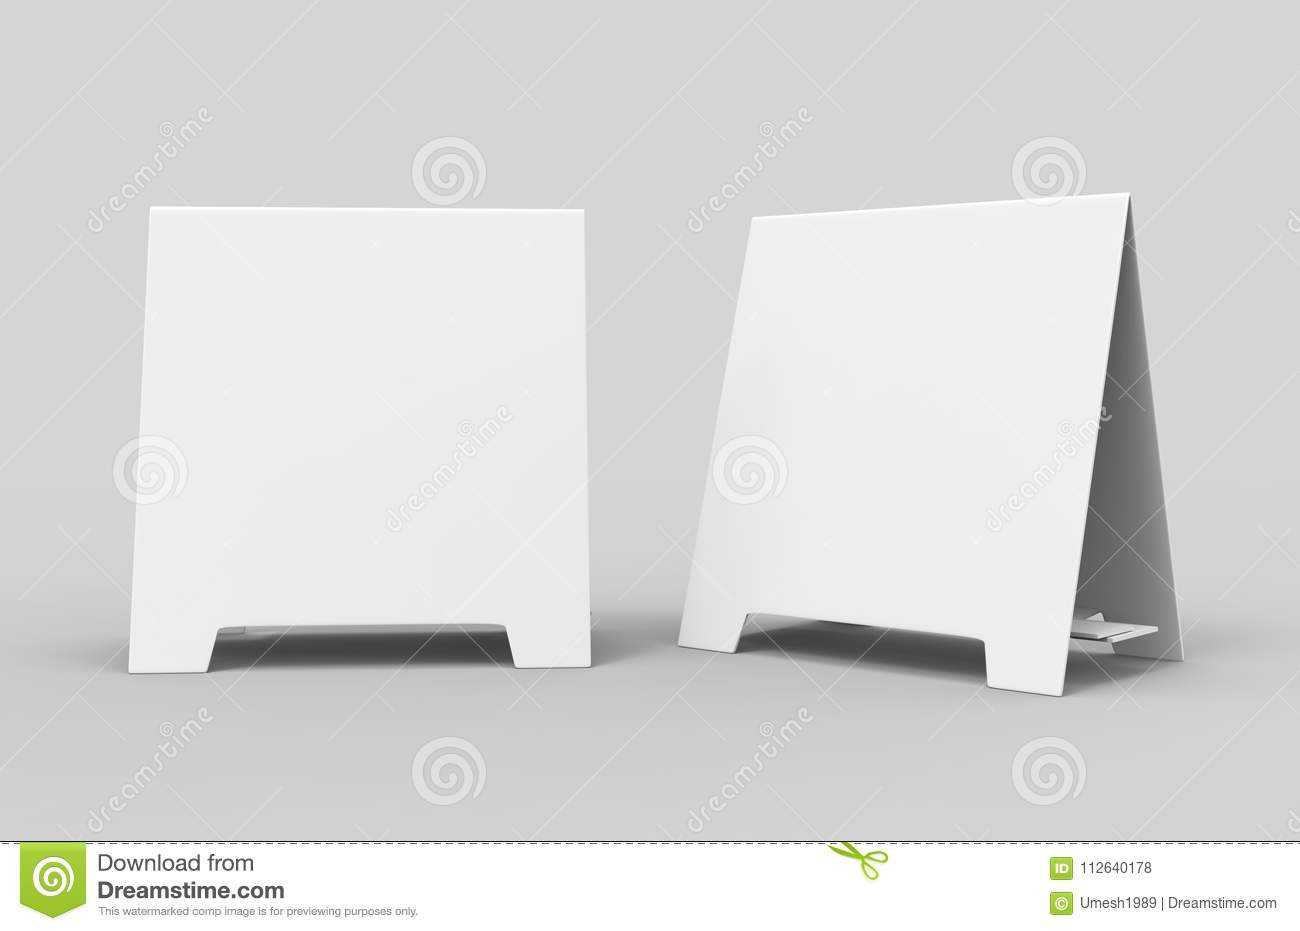 Tablet Tent Card Talkers Promotional Menu Card White Blank With Regard To Blank Tent Card Template